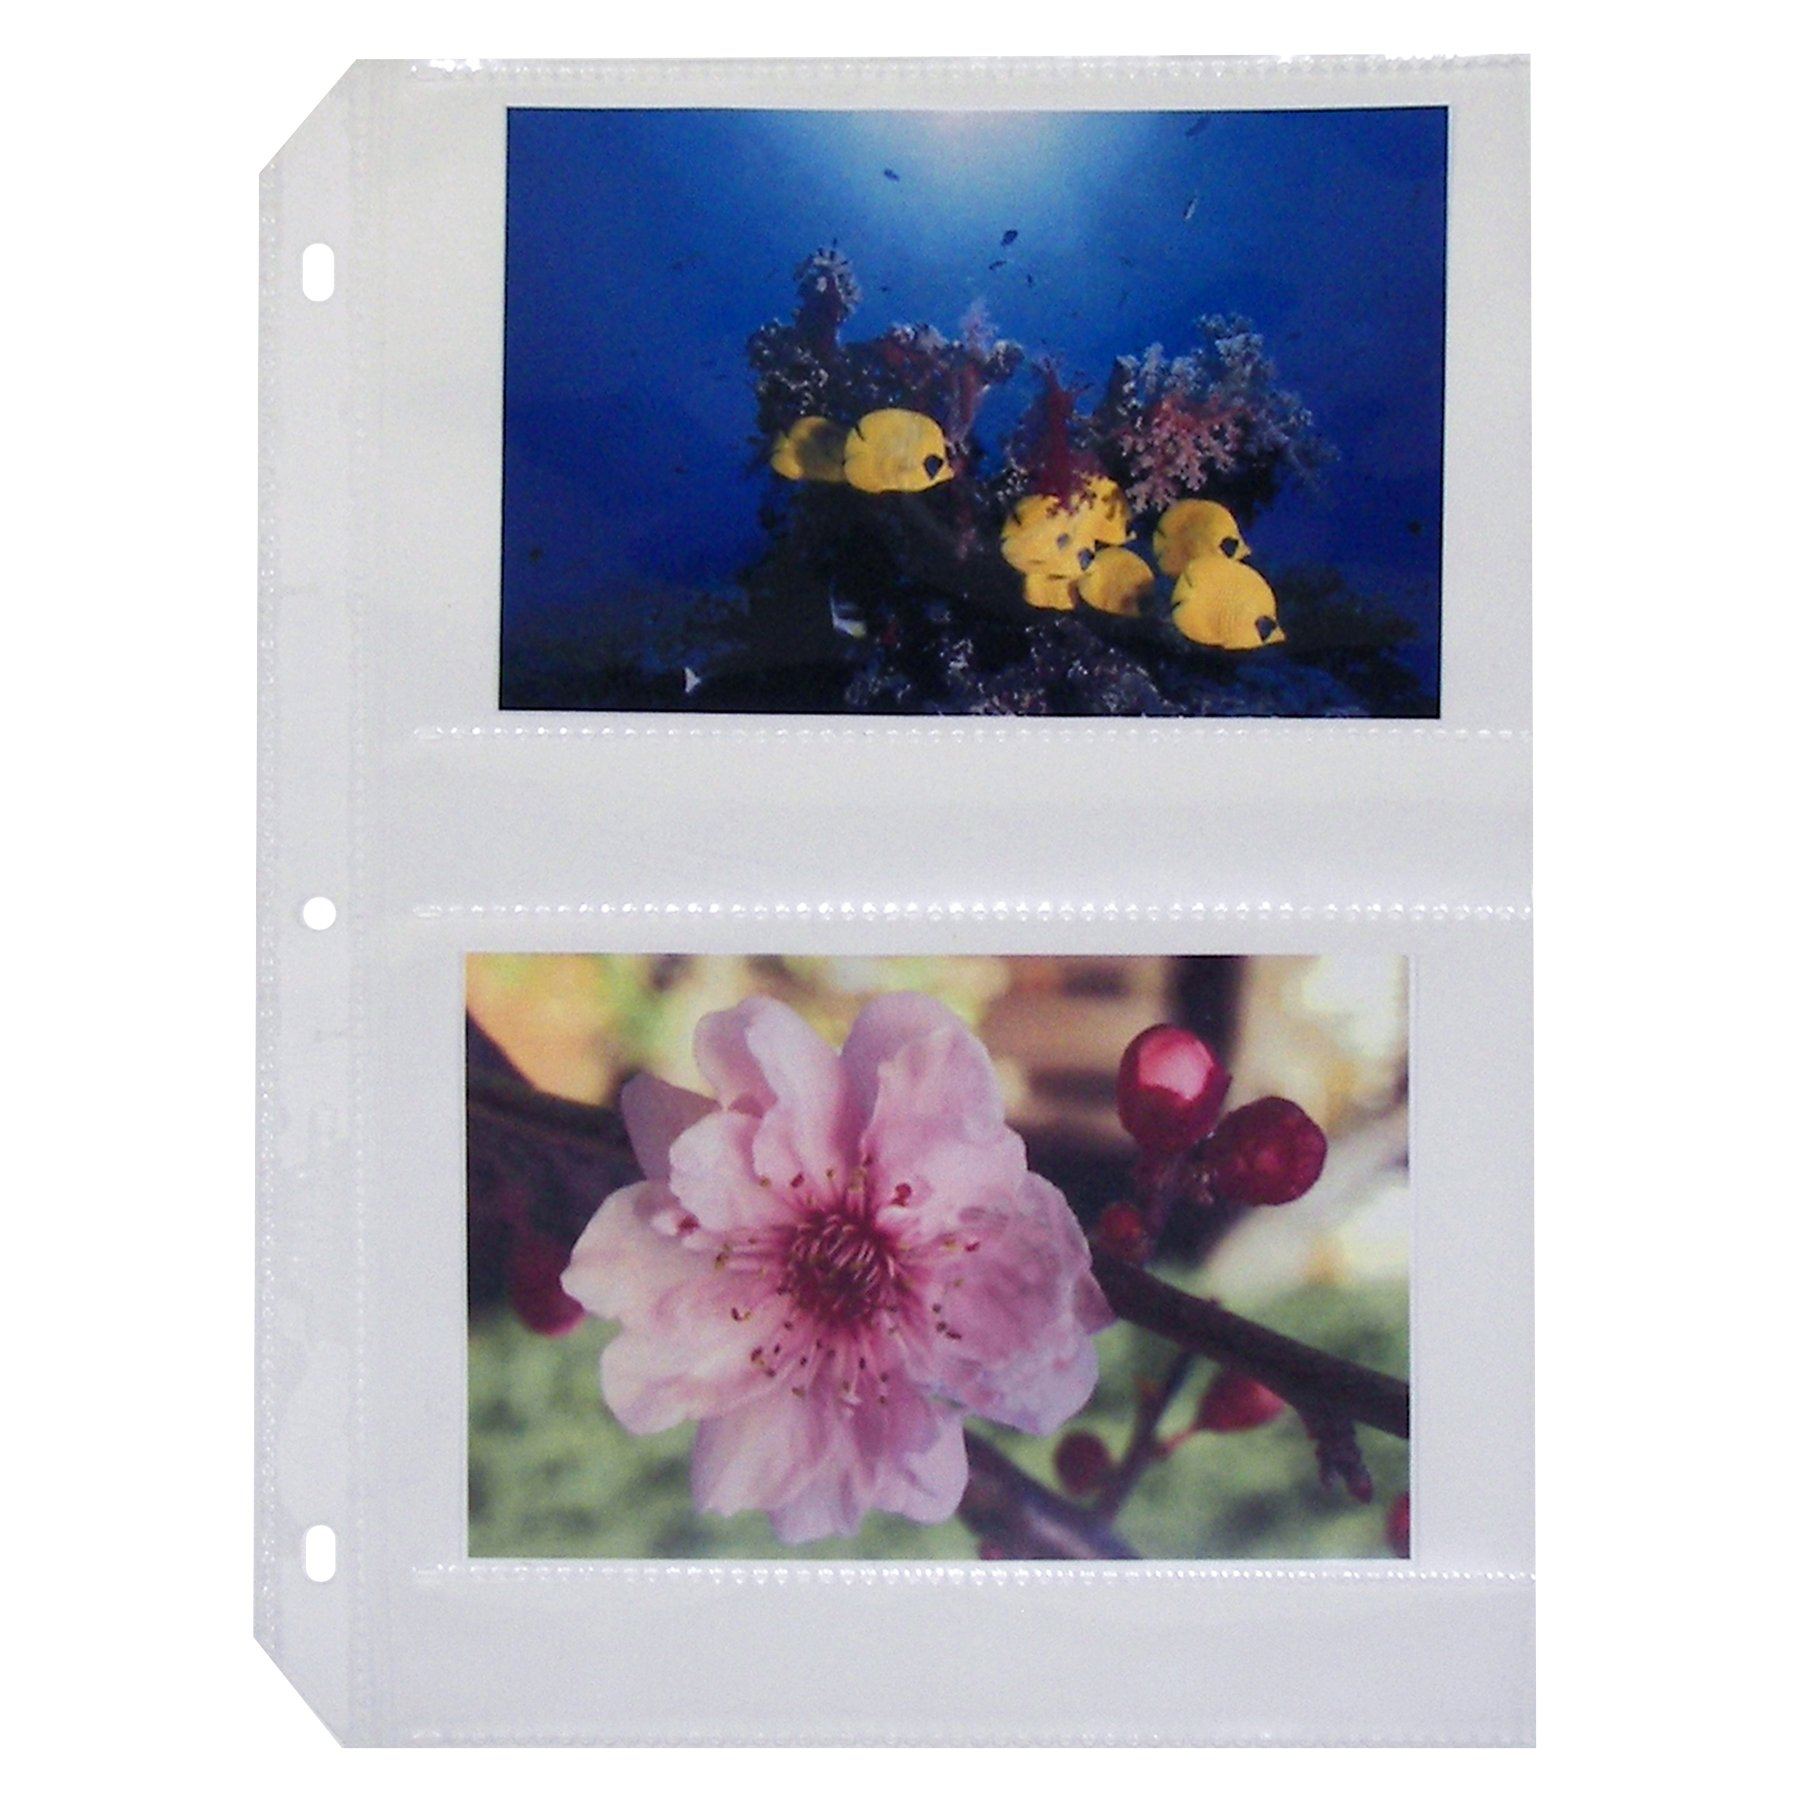 C-Line Ring Binder Photo Storage Pages for 4 x 6 Inch Photos, Side Load, 4 Photos/Page, 50 Pages per Box (52564) by C-Line